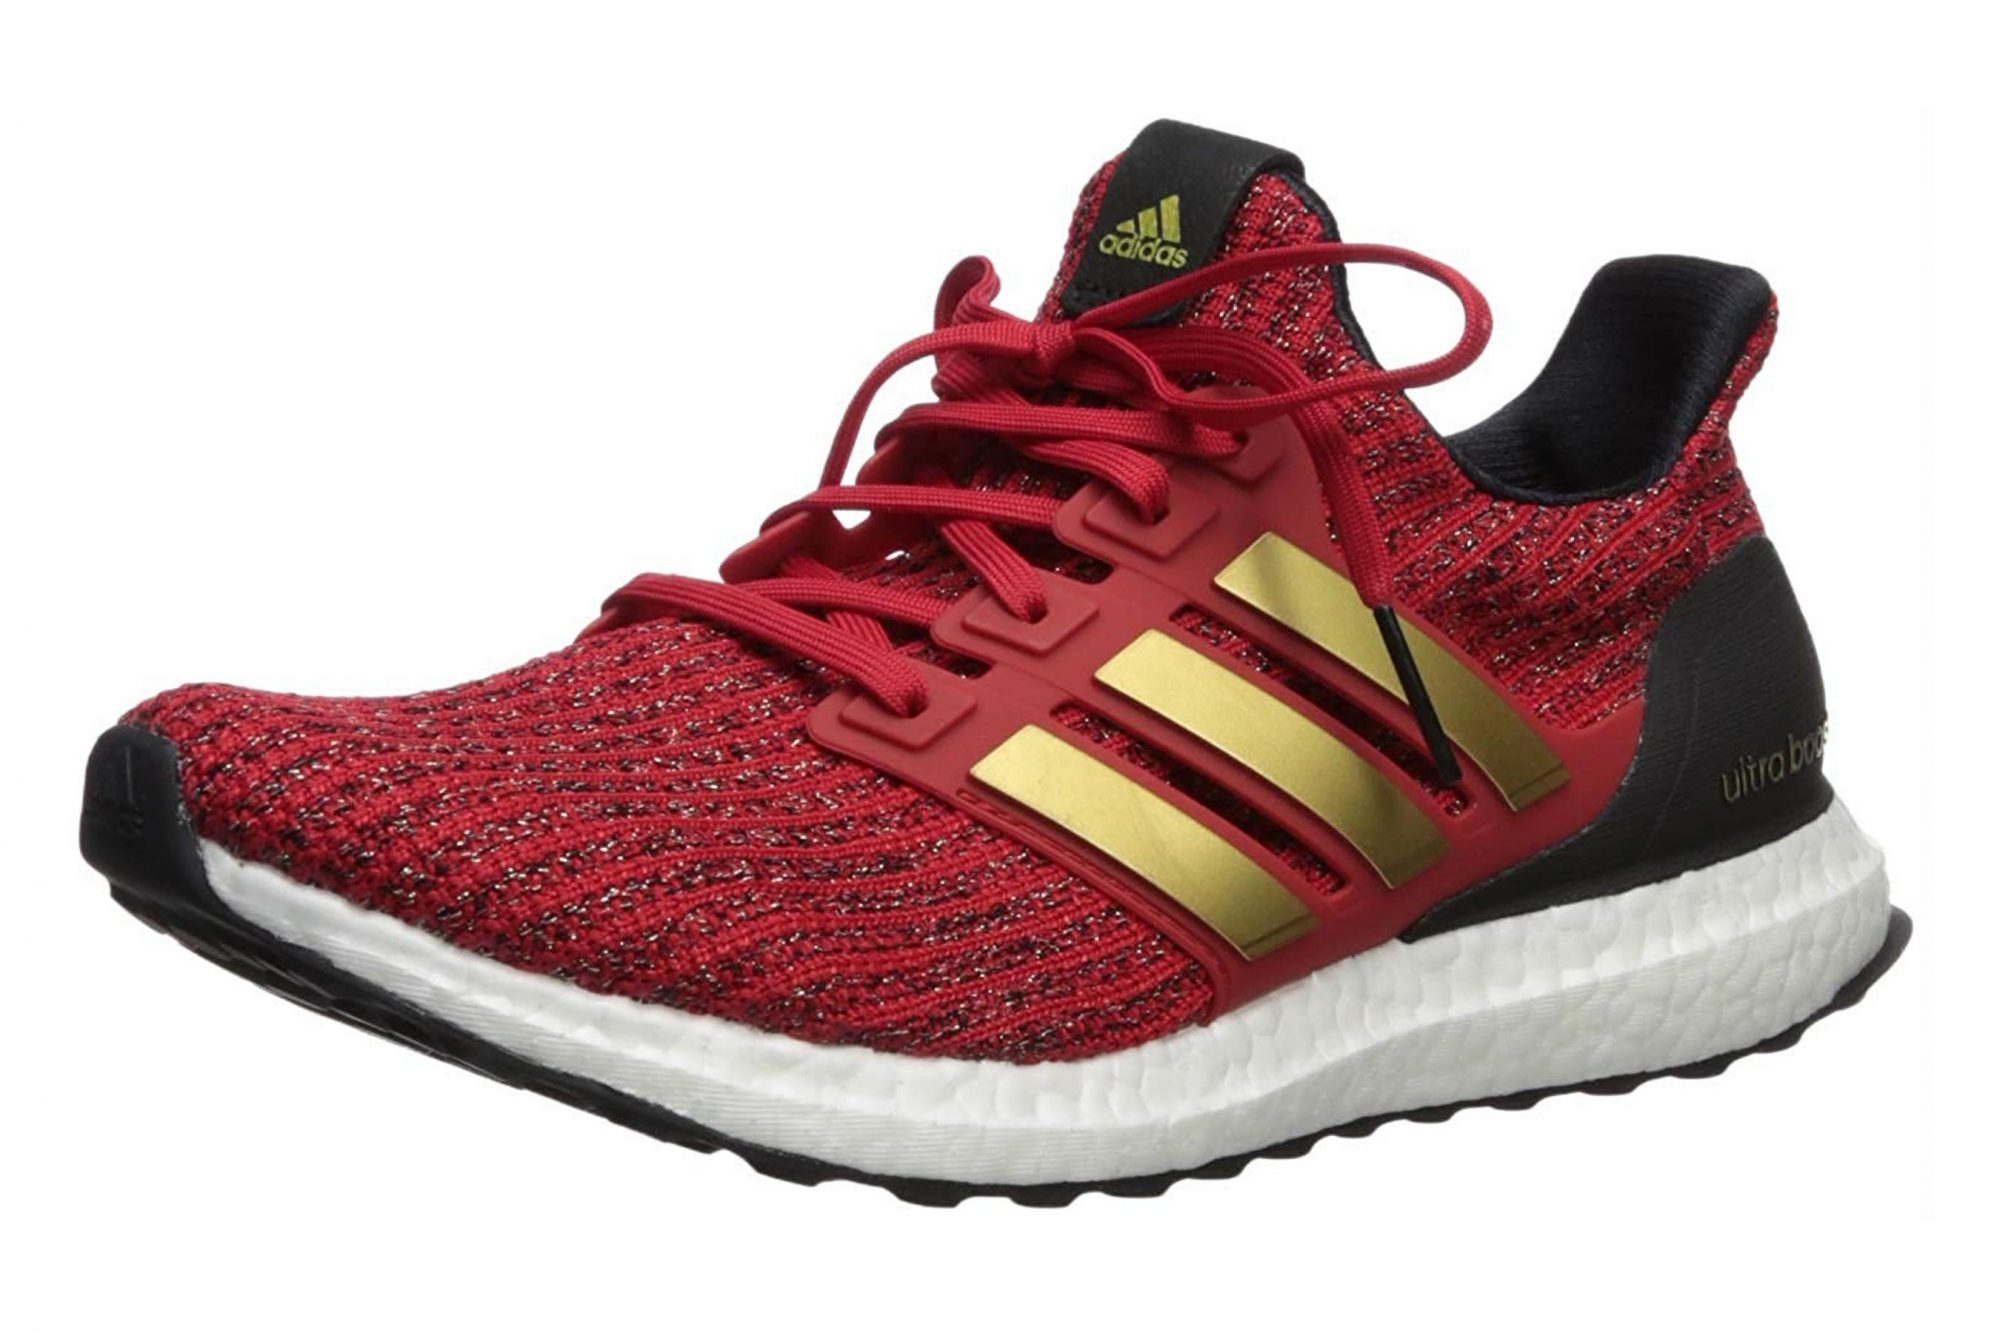 Adidas x Game of Thrones Women's Ultra Boost Running Shoes